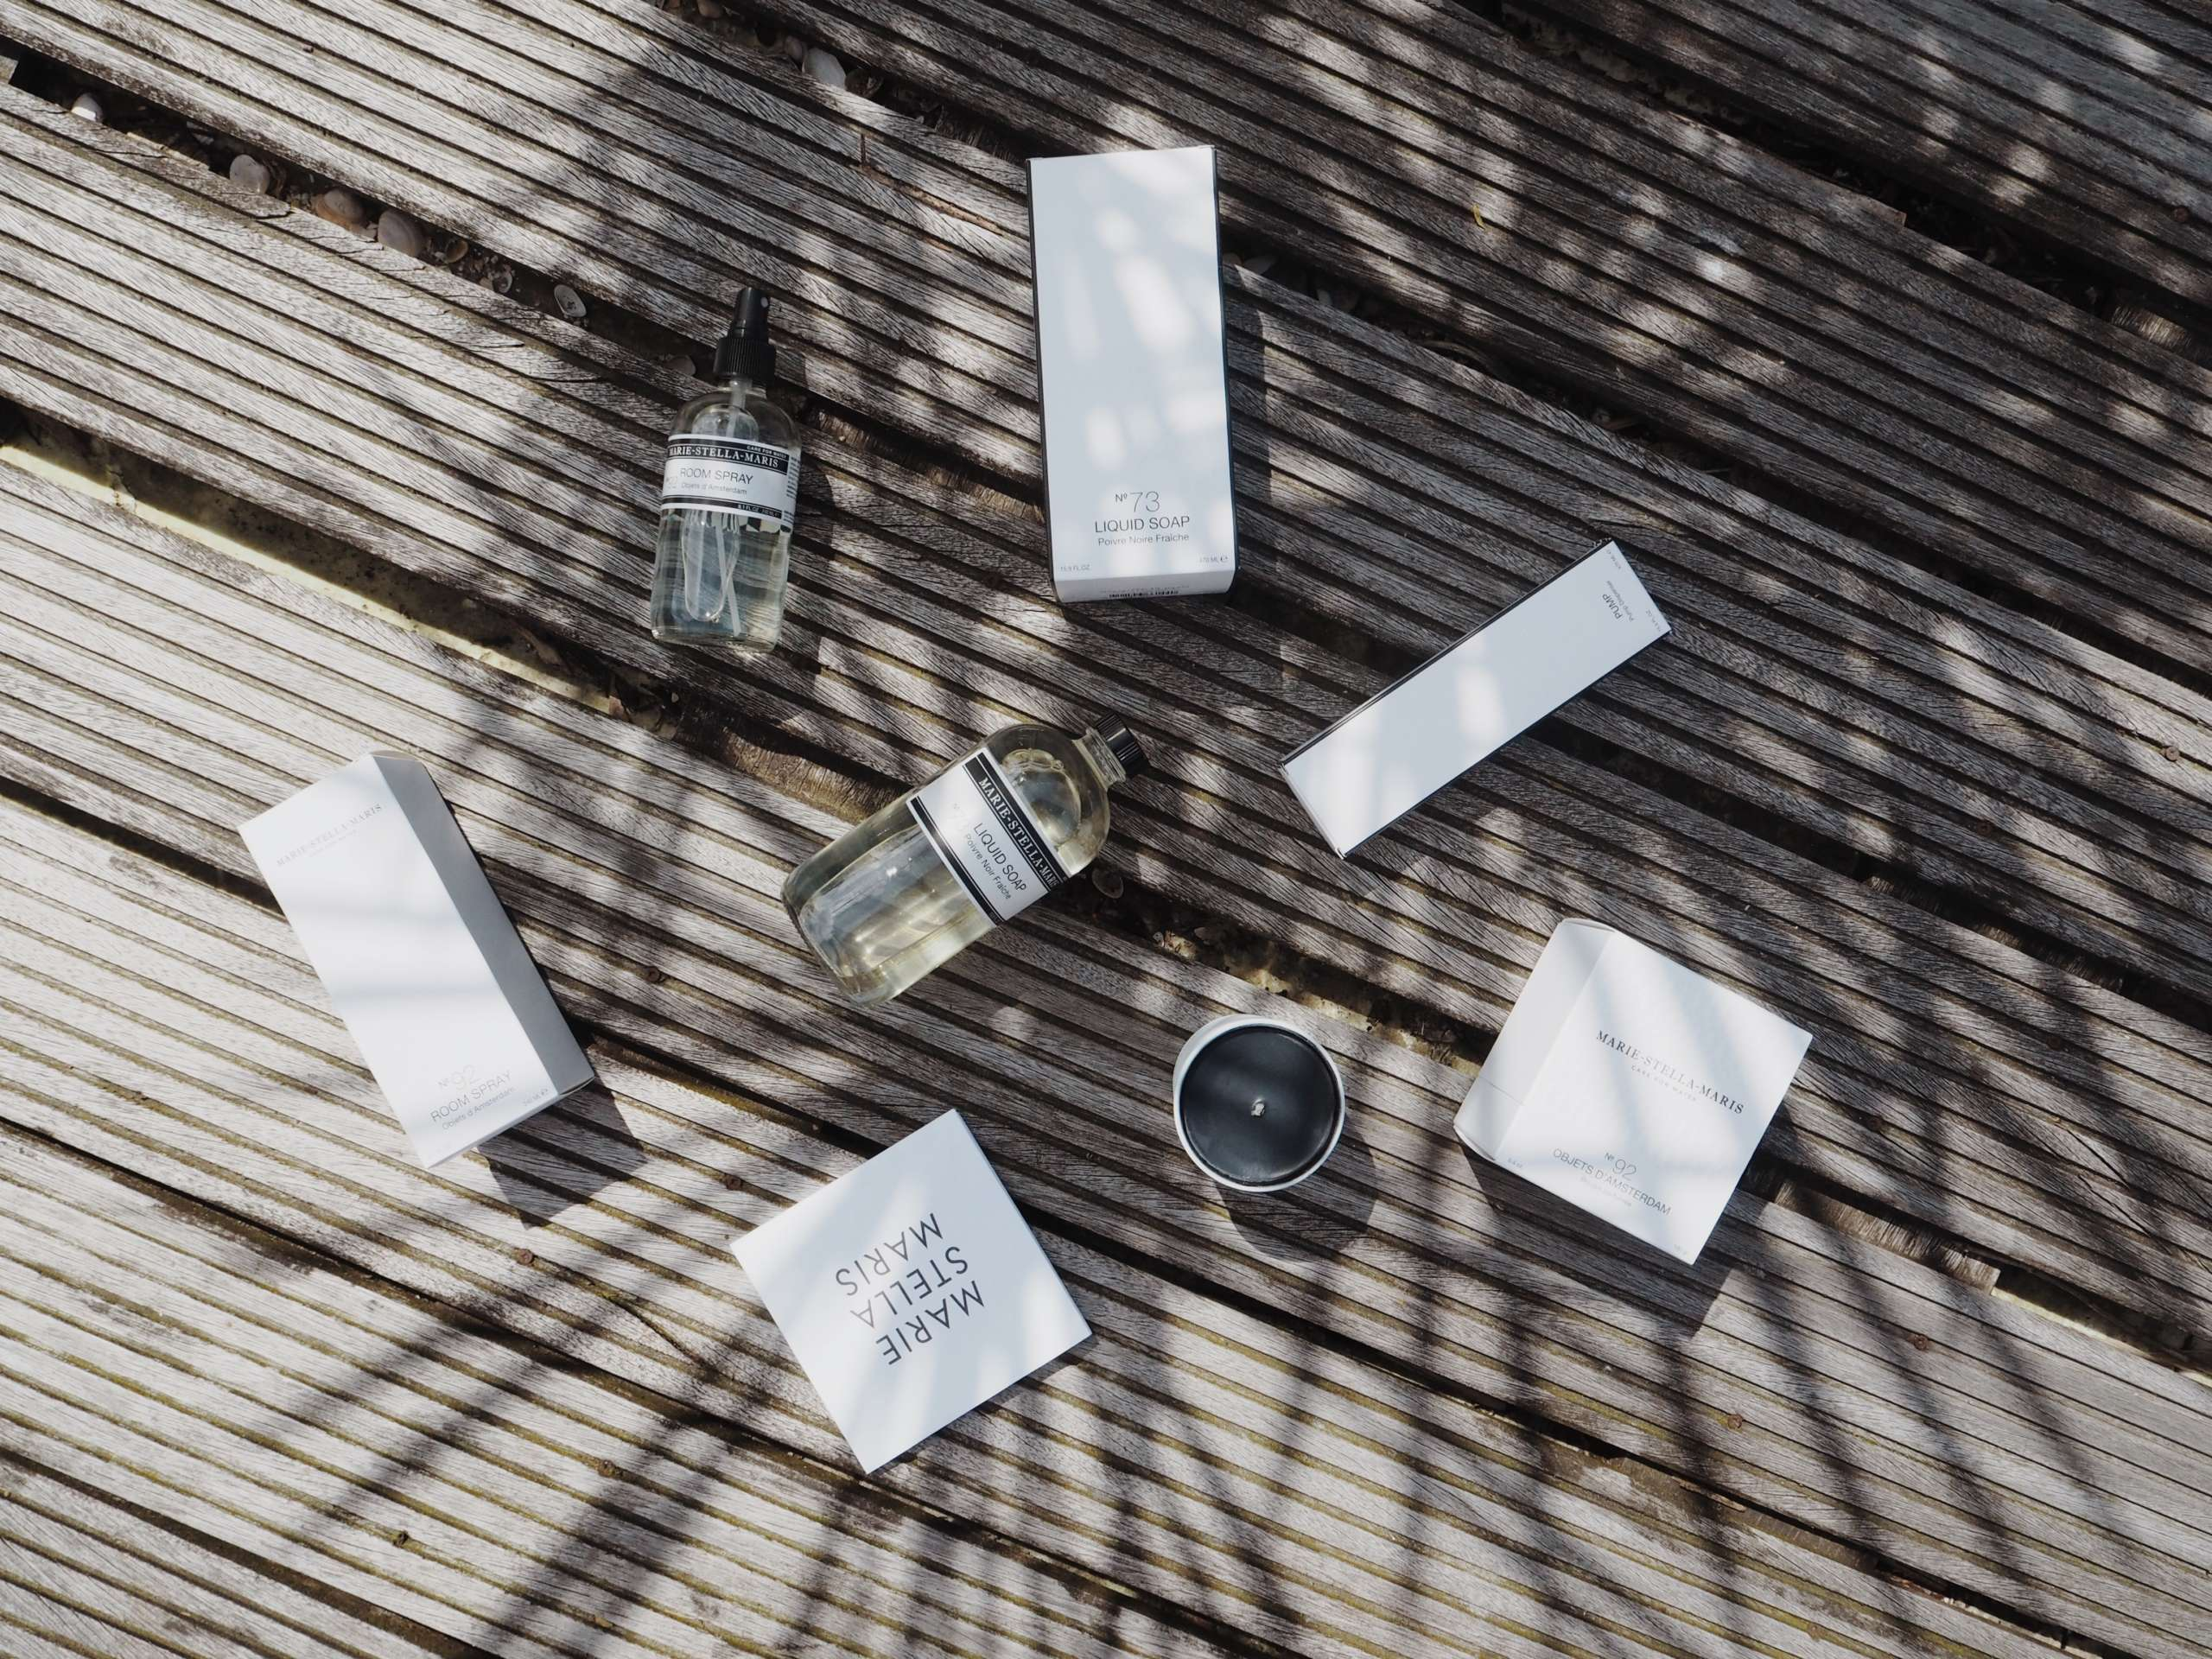 marie-stella-maris-skin-care-amsterdam-water-beauty-review-candle